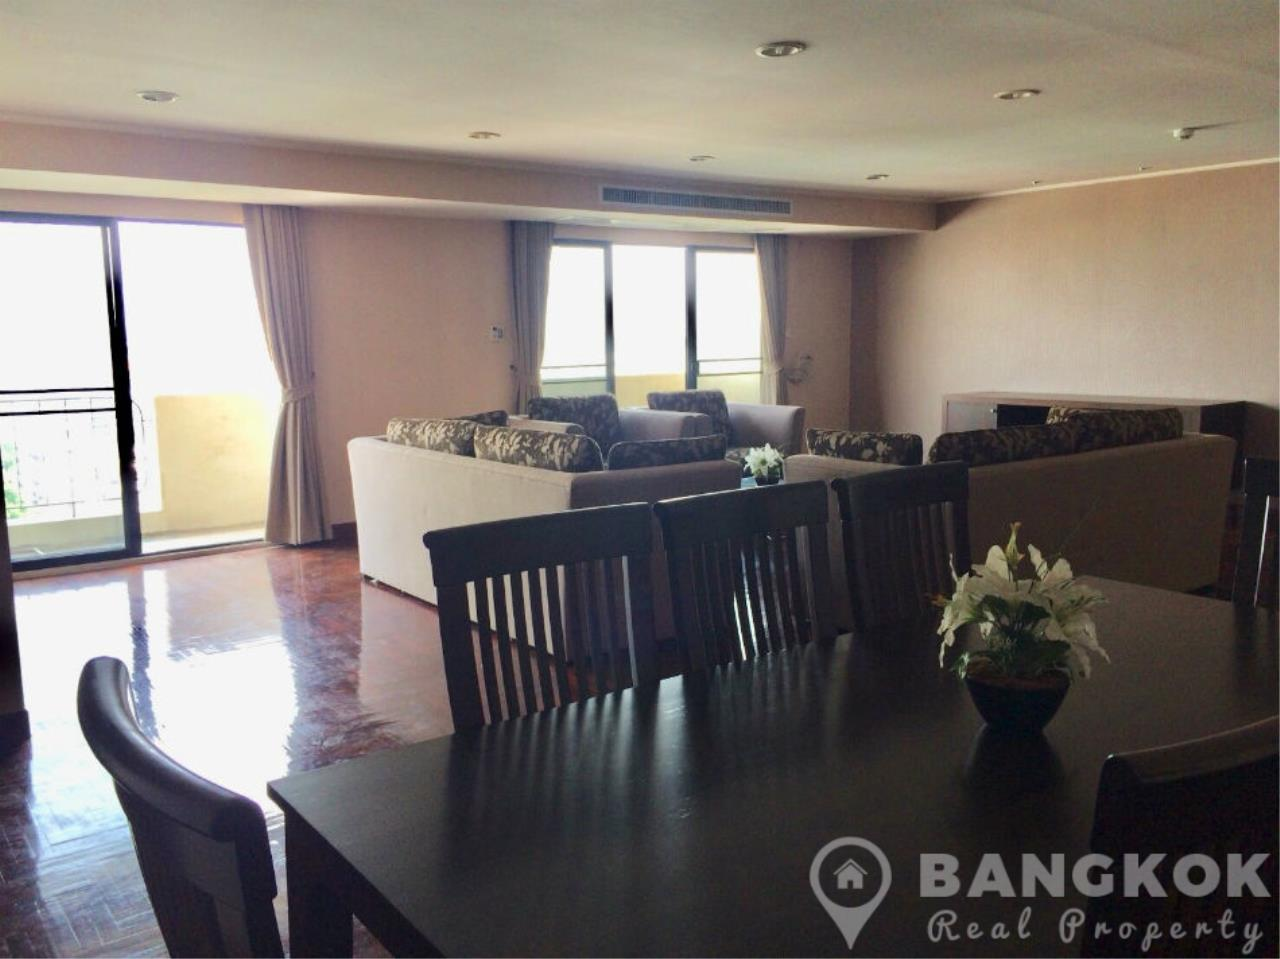 Bangkok Real Property Agency's Casa Viva | Very Spacious 3 Bed 3 Bath Condo in Ekkamai 5